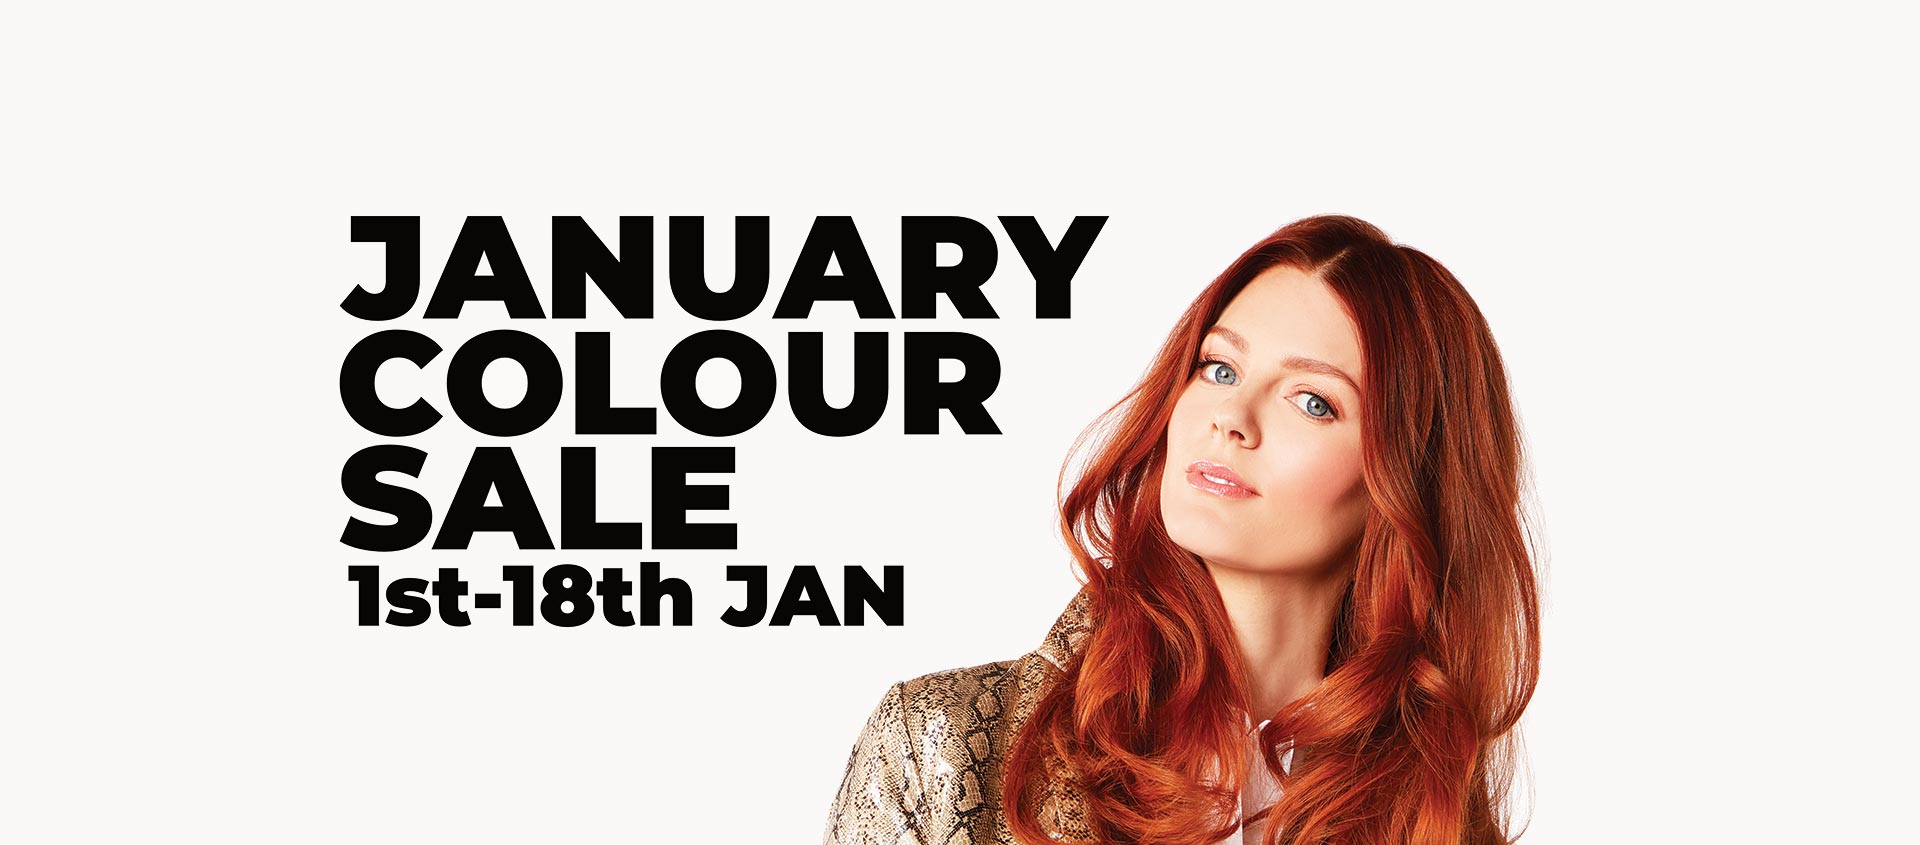 January Colour Sale